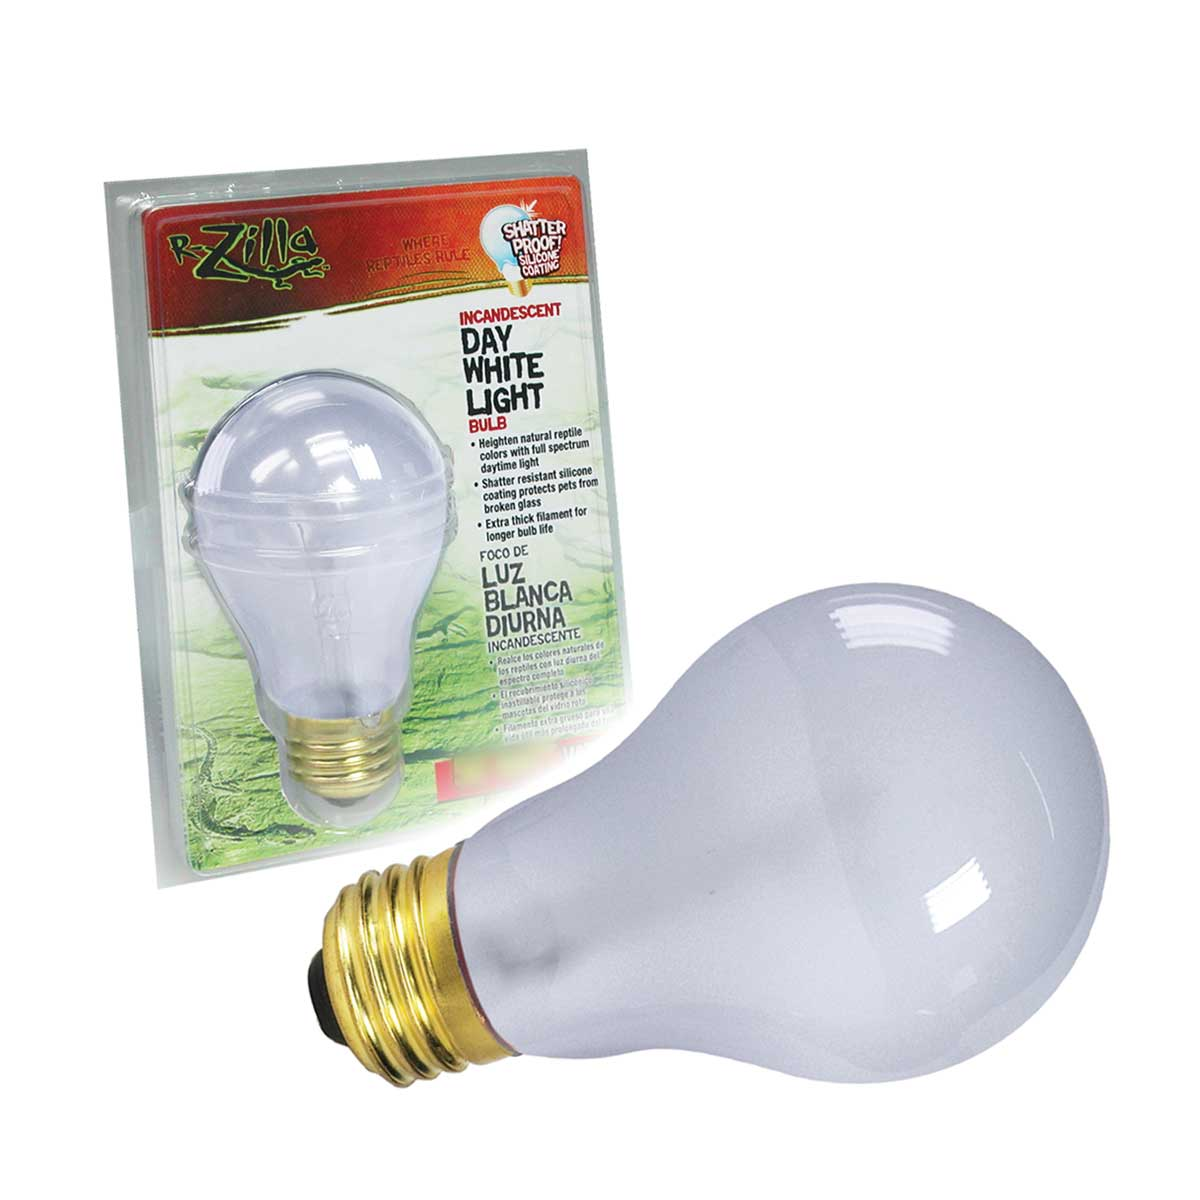 Incandescent White Daylight Bulbs